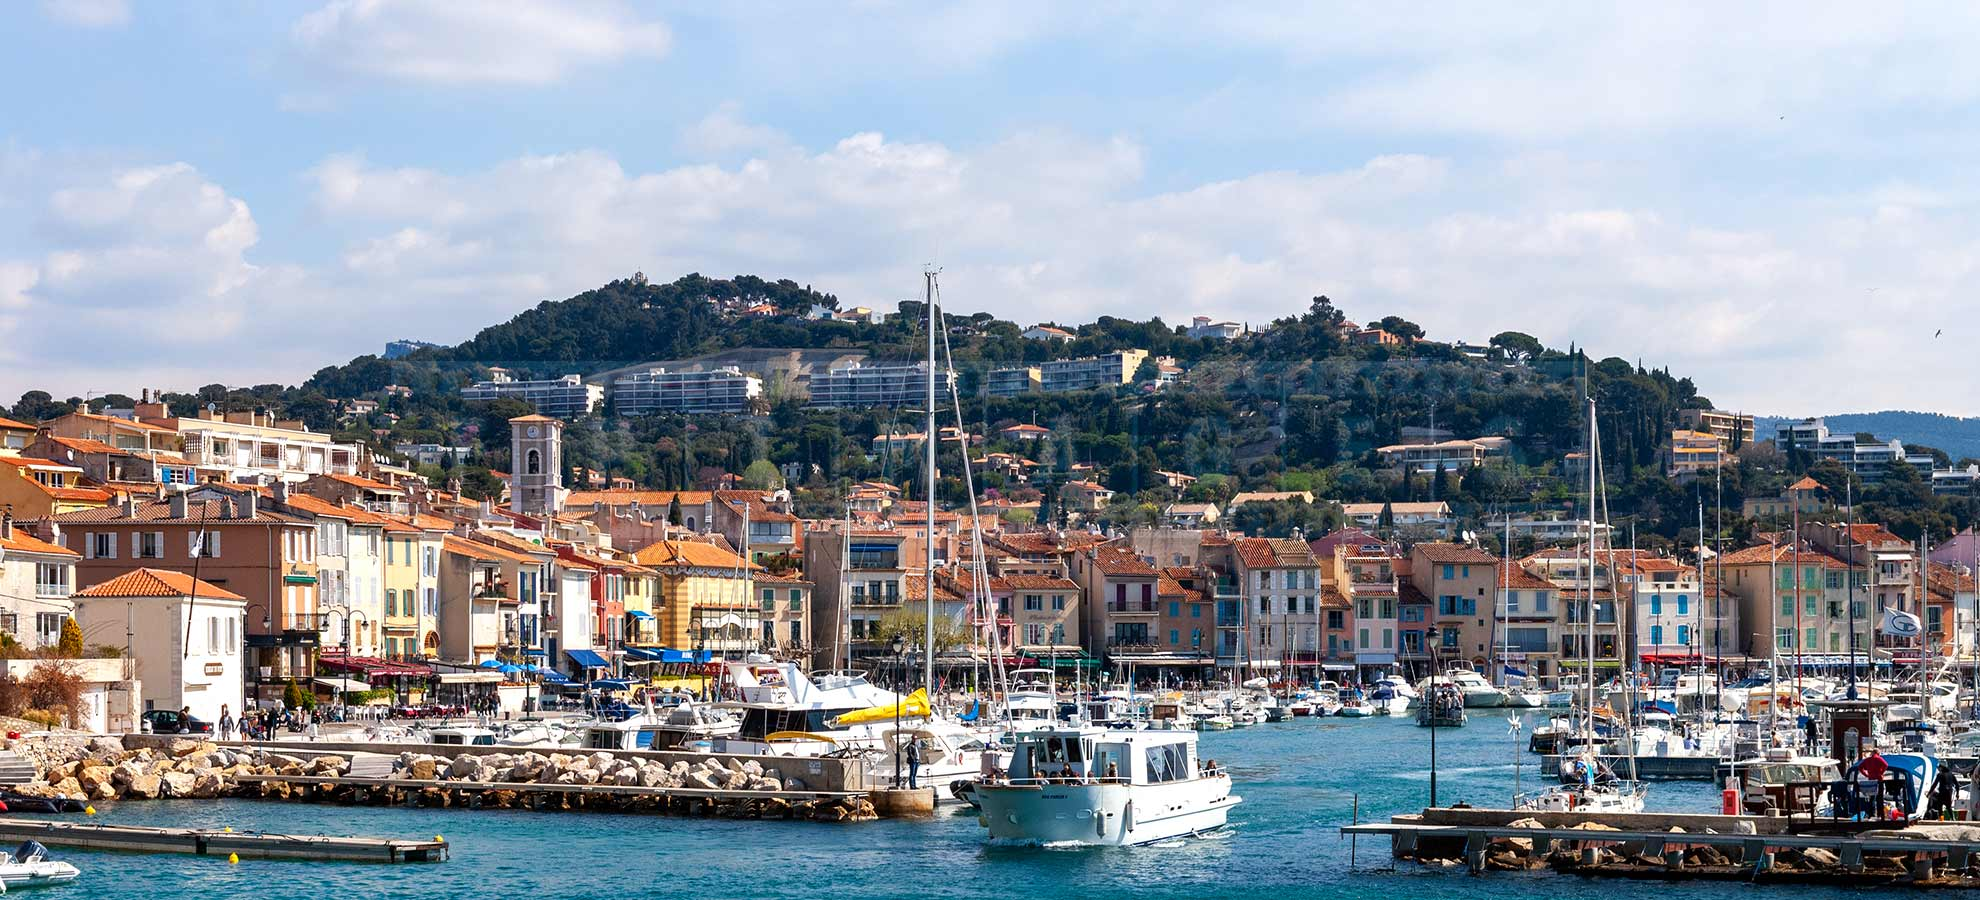 Beautiful little harbour of Cassis, France